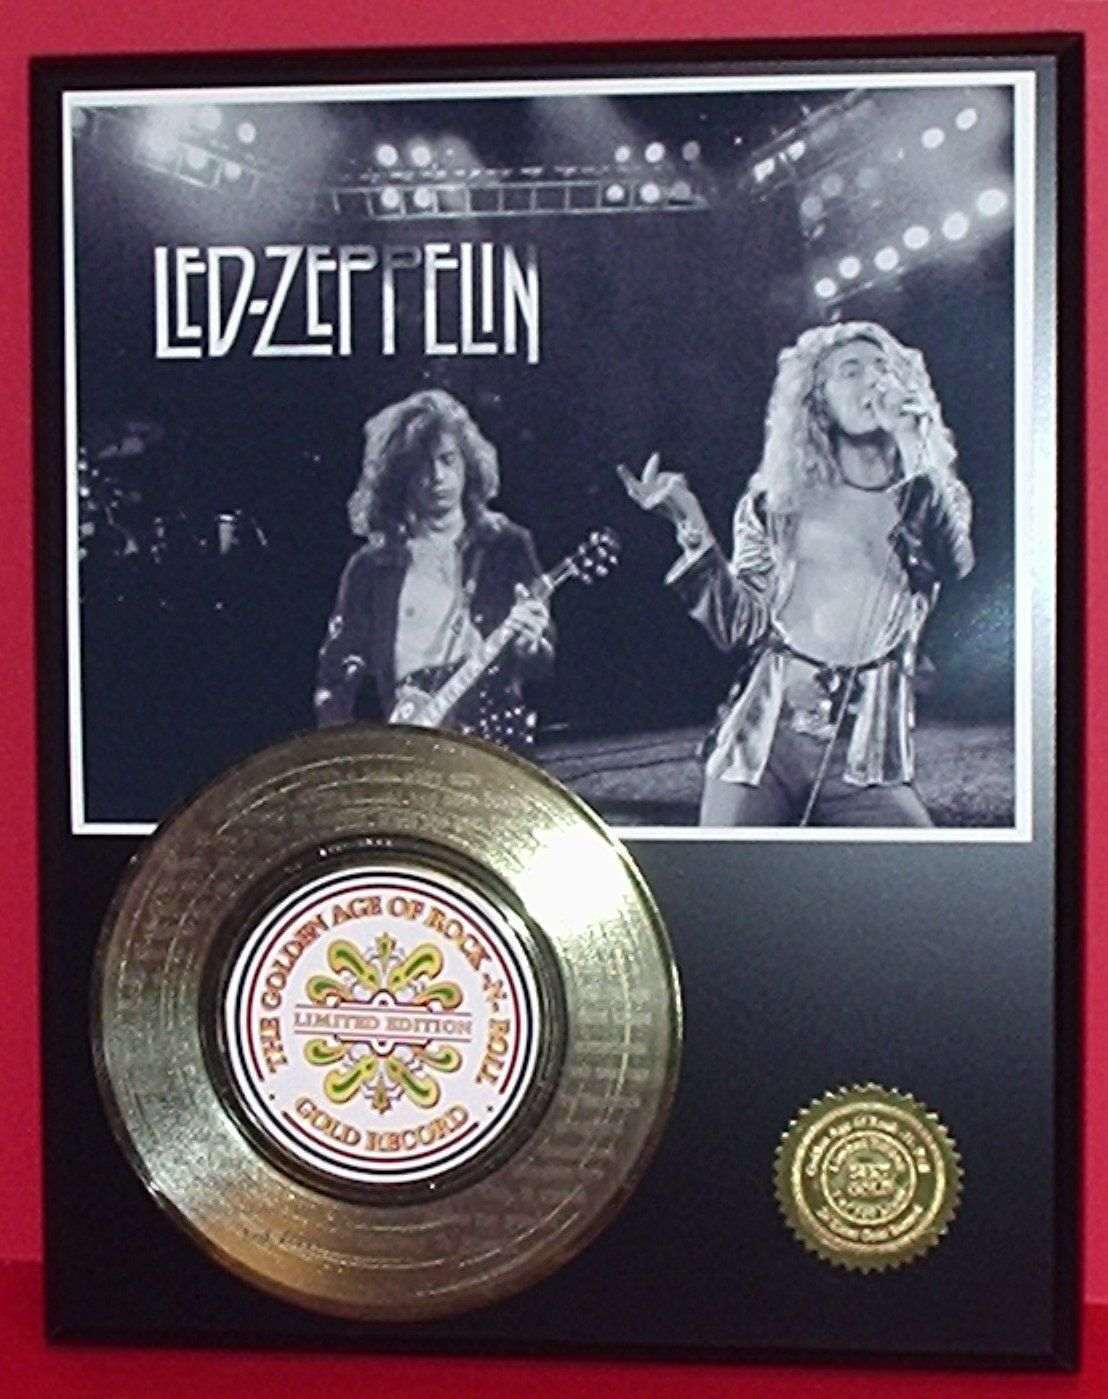 Led Zeppelin Gold Record Award Style Memorabilia Laser Etched W/Song Lyrics Art